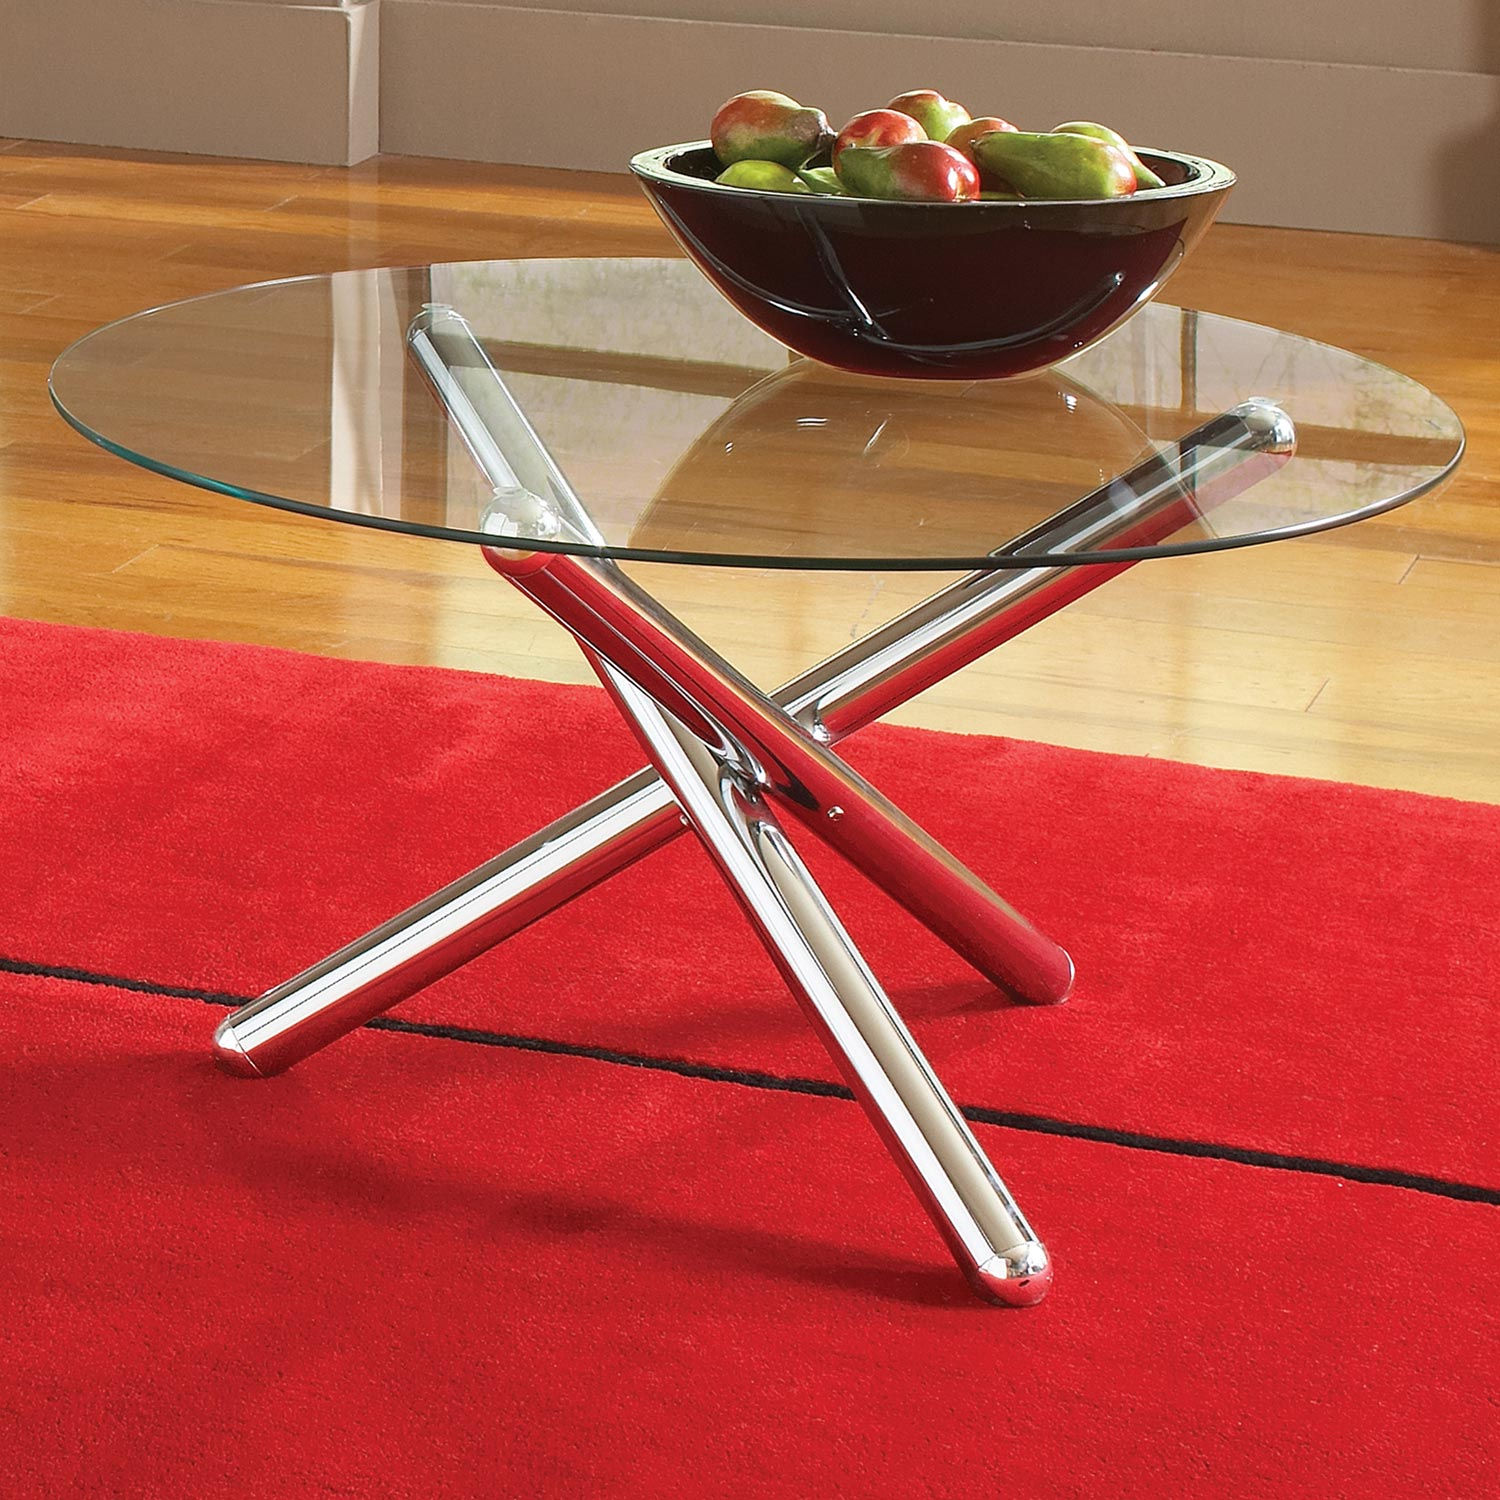 Riviera Round Coffee Table Set - Glass, Chrome Cylindrical Legs - SSC-RV3000T-RV3000B